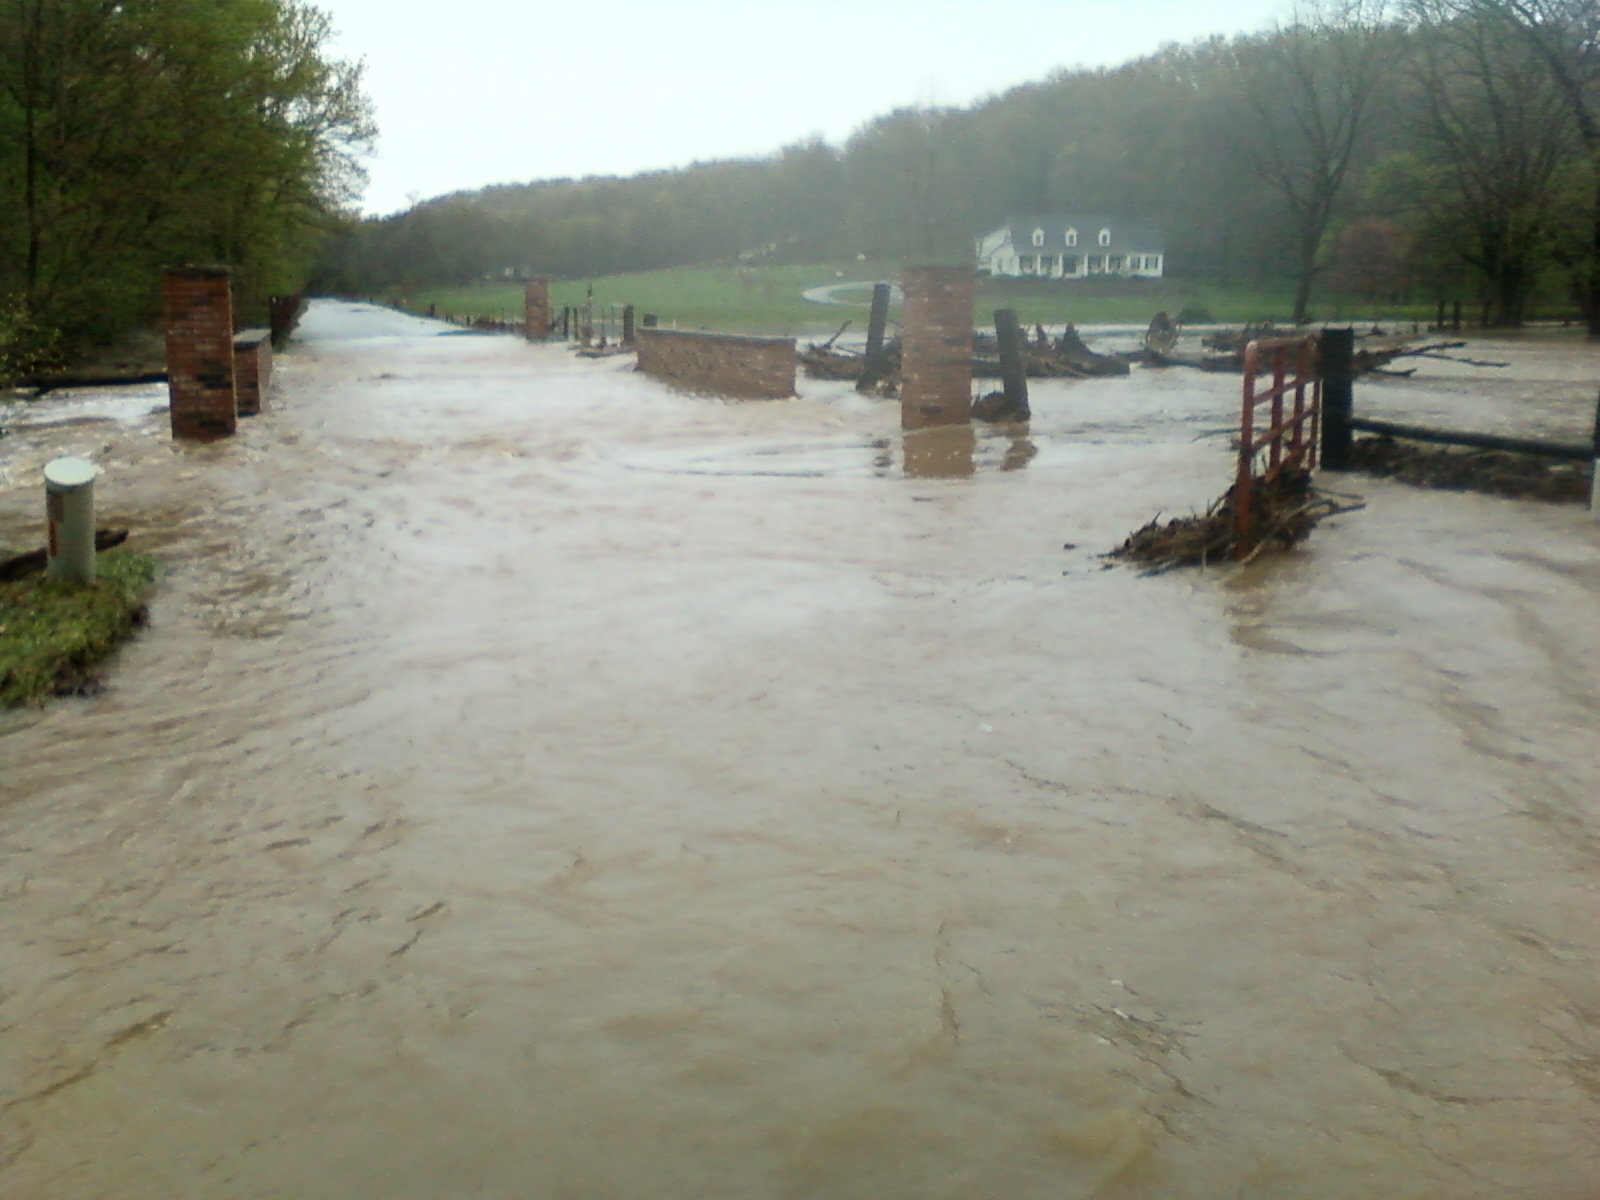 Water from McKissic Creek filled the field and ran over the bridge leading up to the Bluffs subdivision.